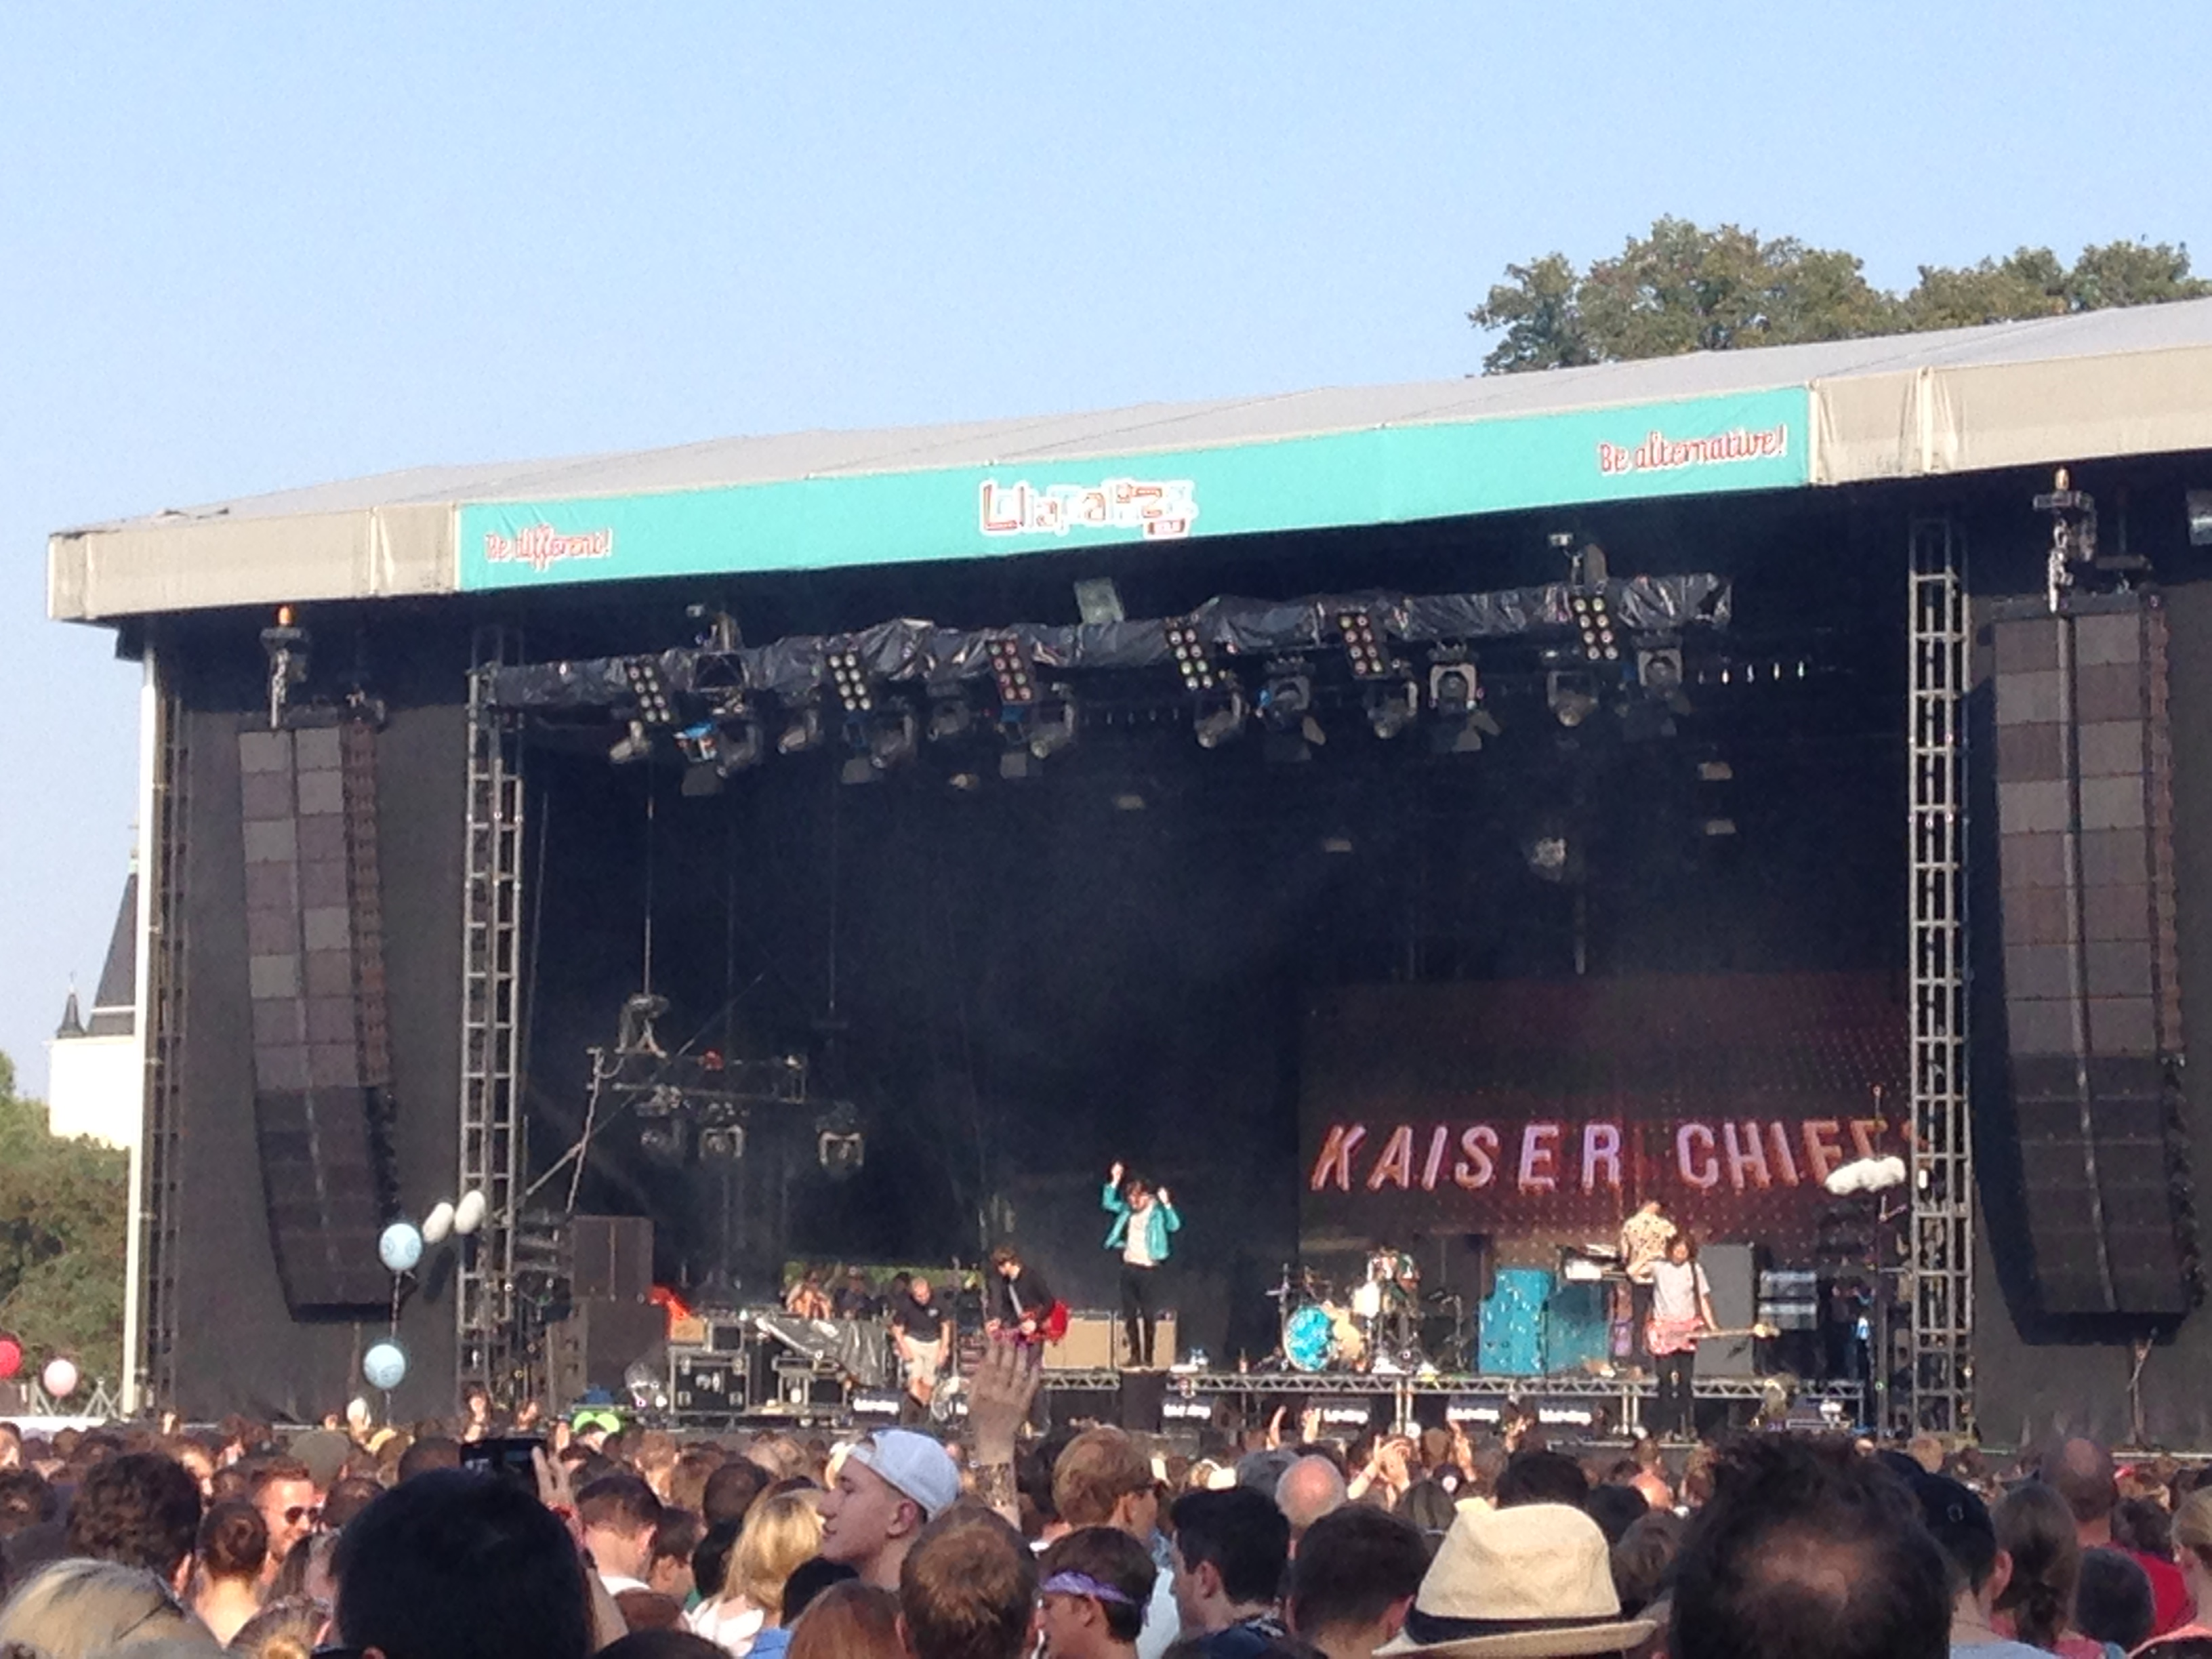 Kaiser Chiefs in action